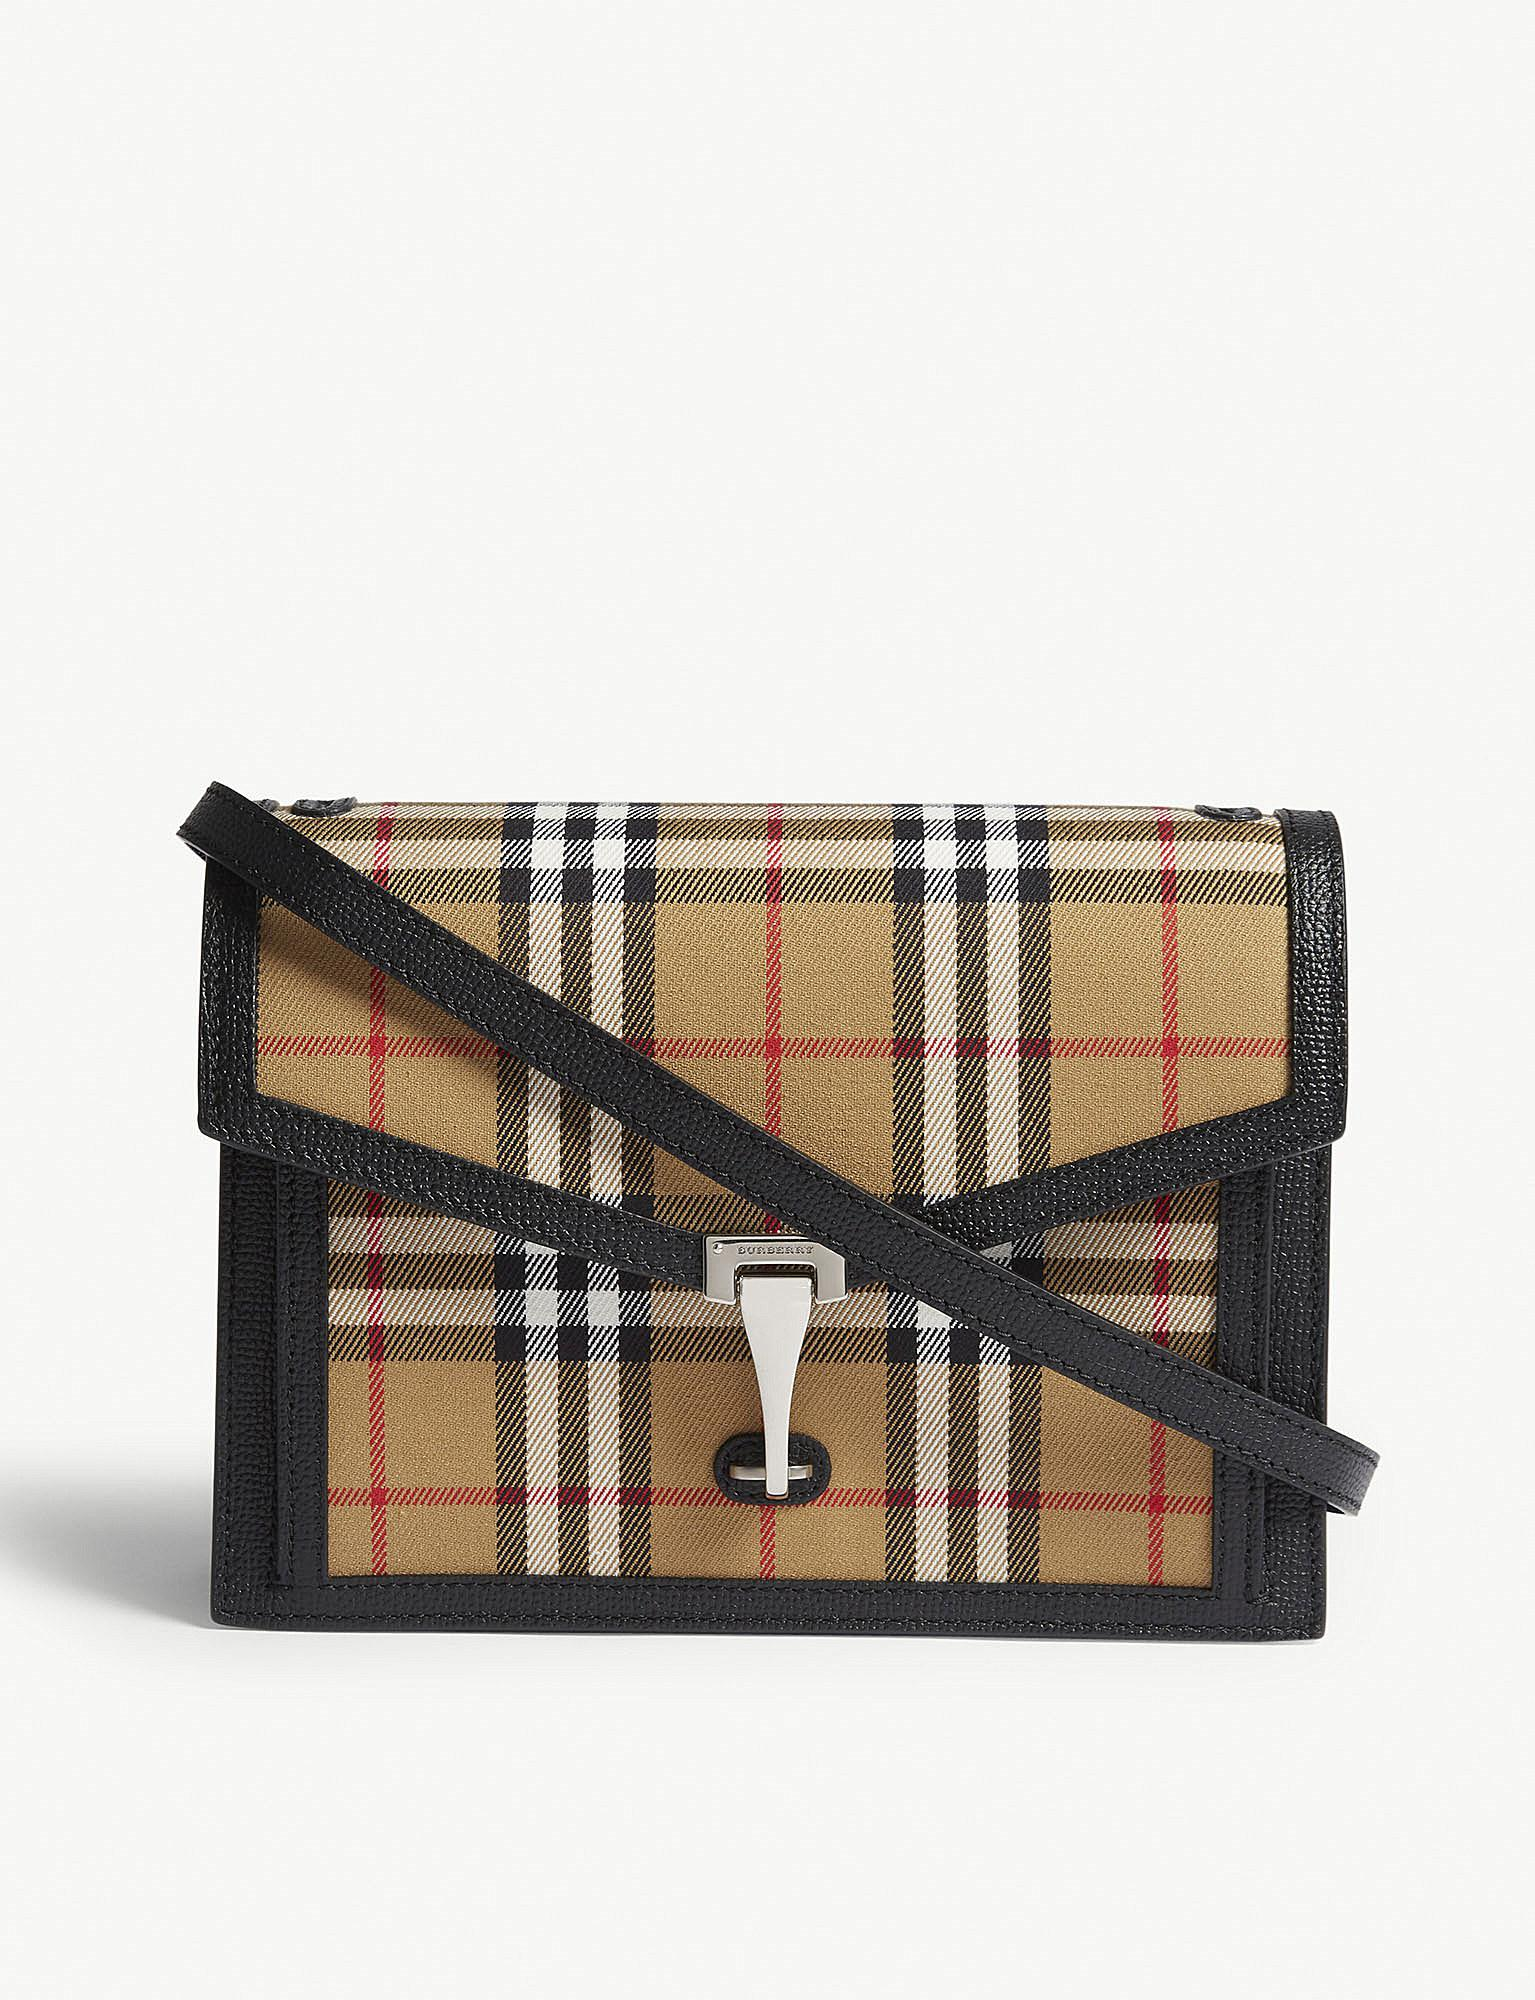 105c18ee25ce Lyst - Burberry Small Vintage Check Cross-body Bag in Black